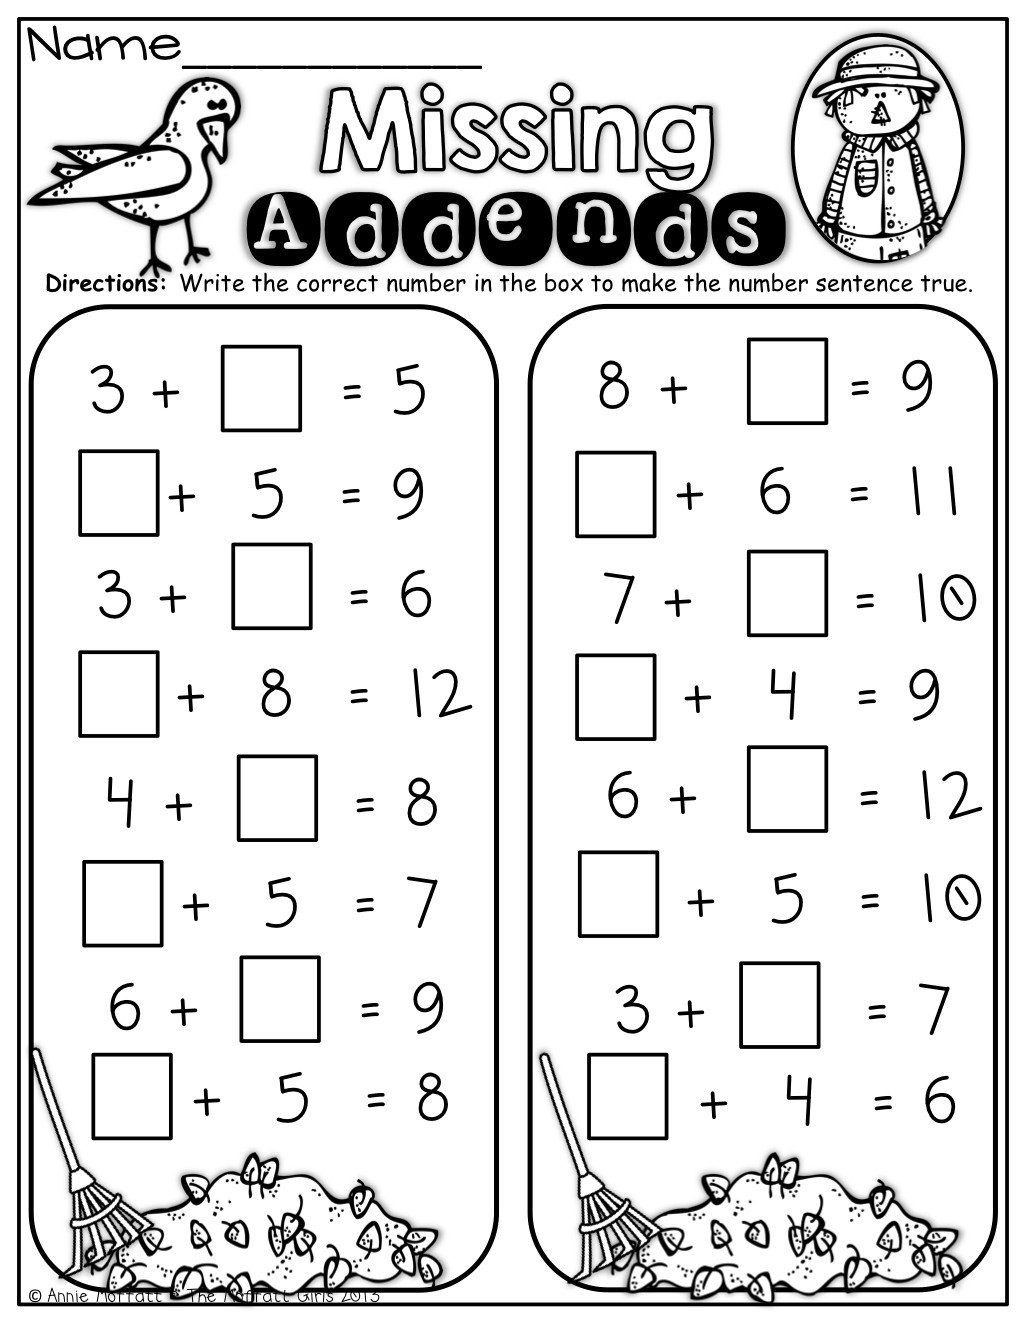 Missing Addends Worksheets 1st Grade Pin On Printable Worksheet for Kindergarten